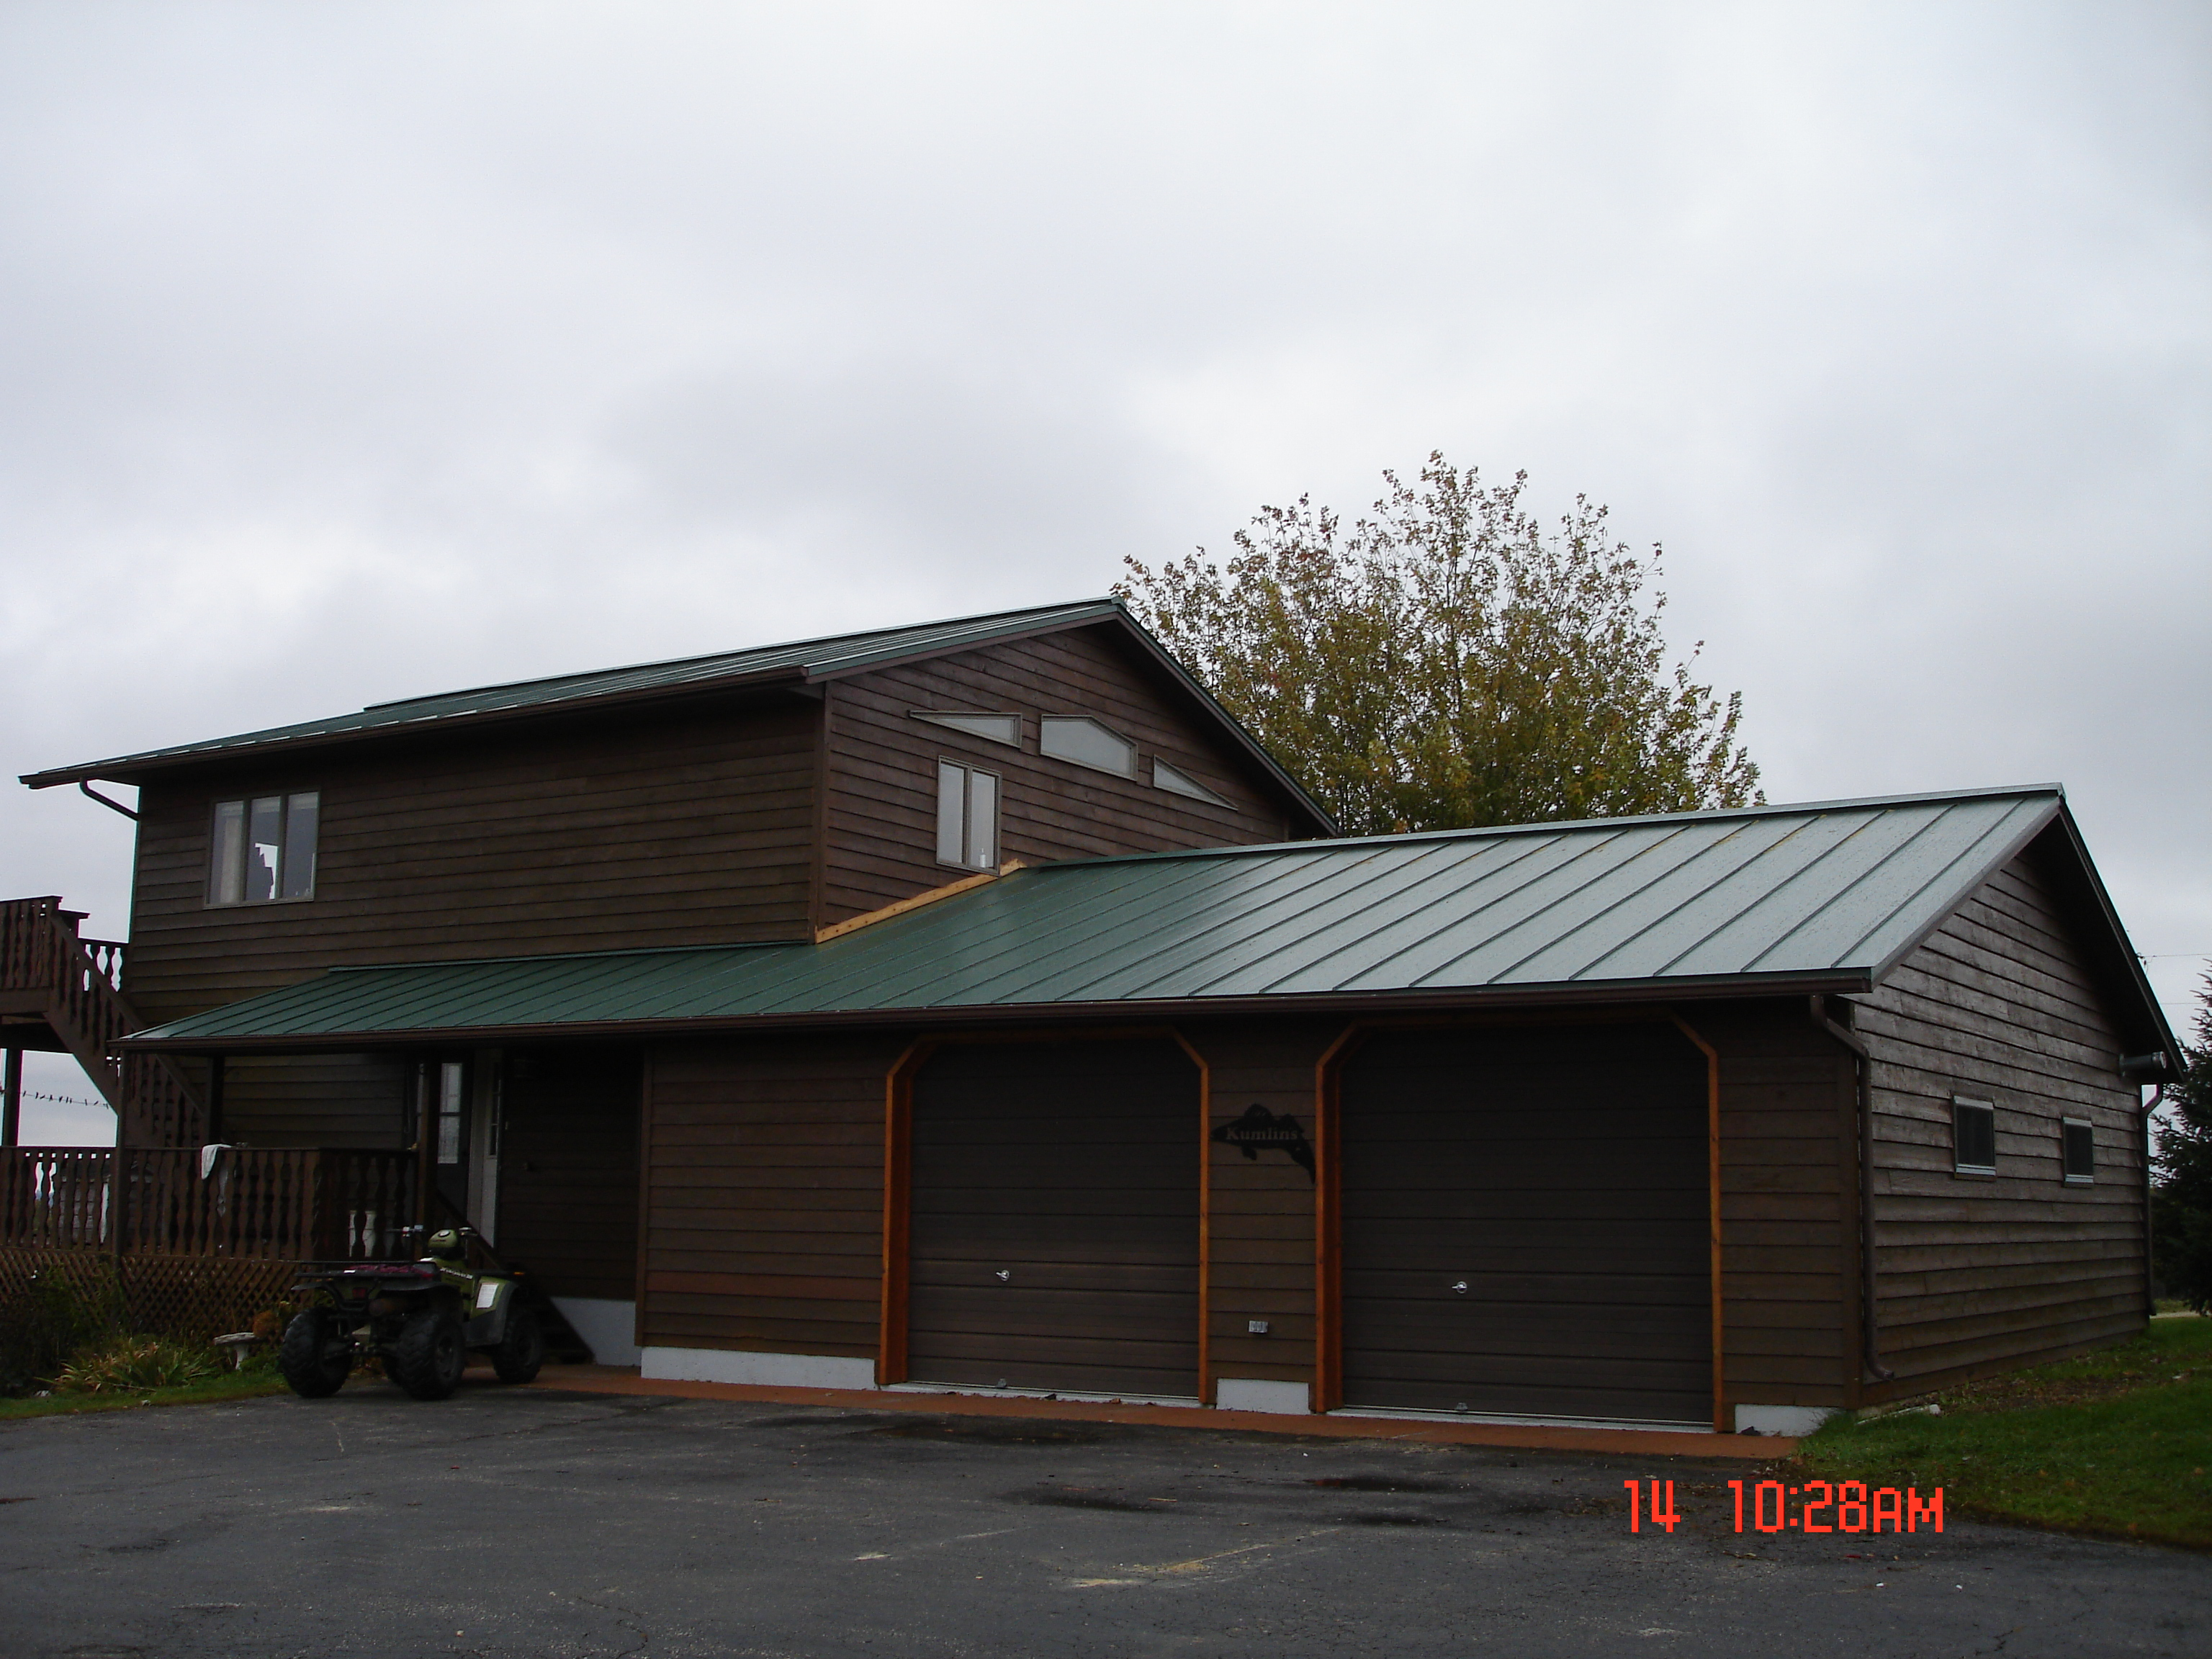 Standing Seam sheet metal roofing dark sherwood green house residential wisconsin iowa minnesota illinois north dakota